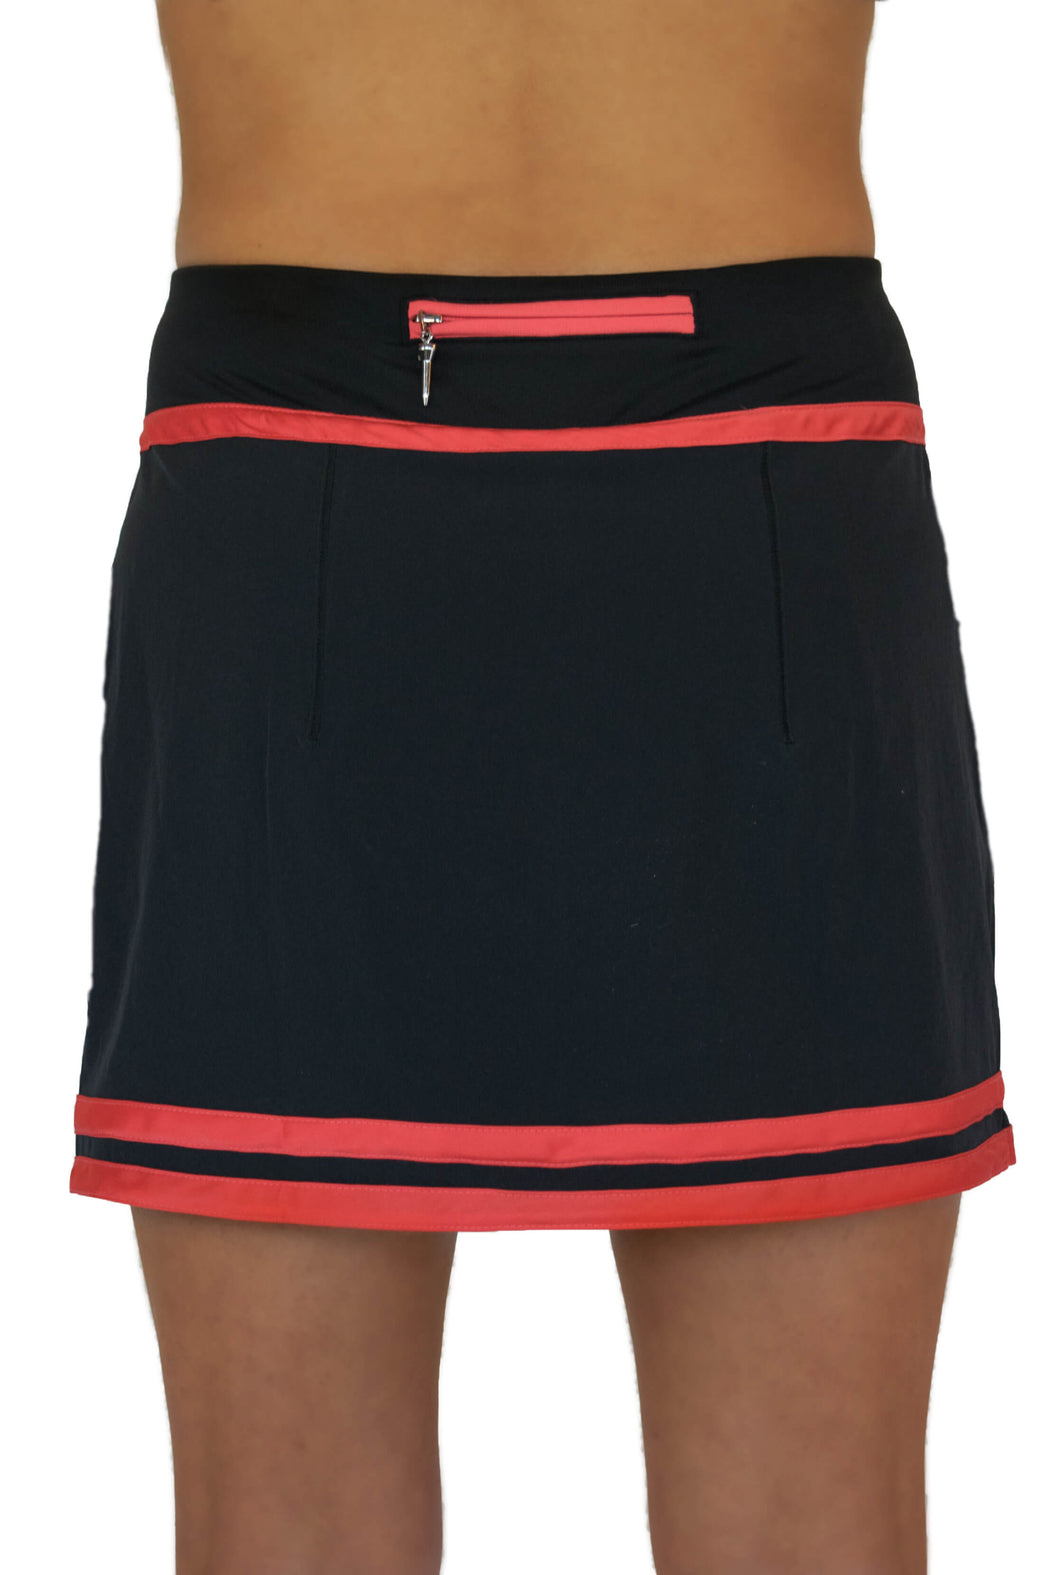 NEW! Striped Hem Golf Skirt - Black with Haute Coral Stripes